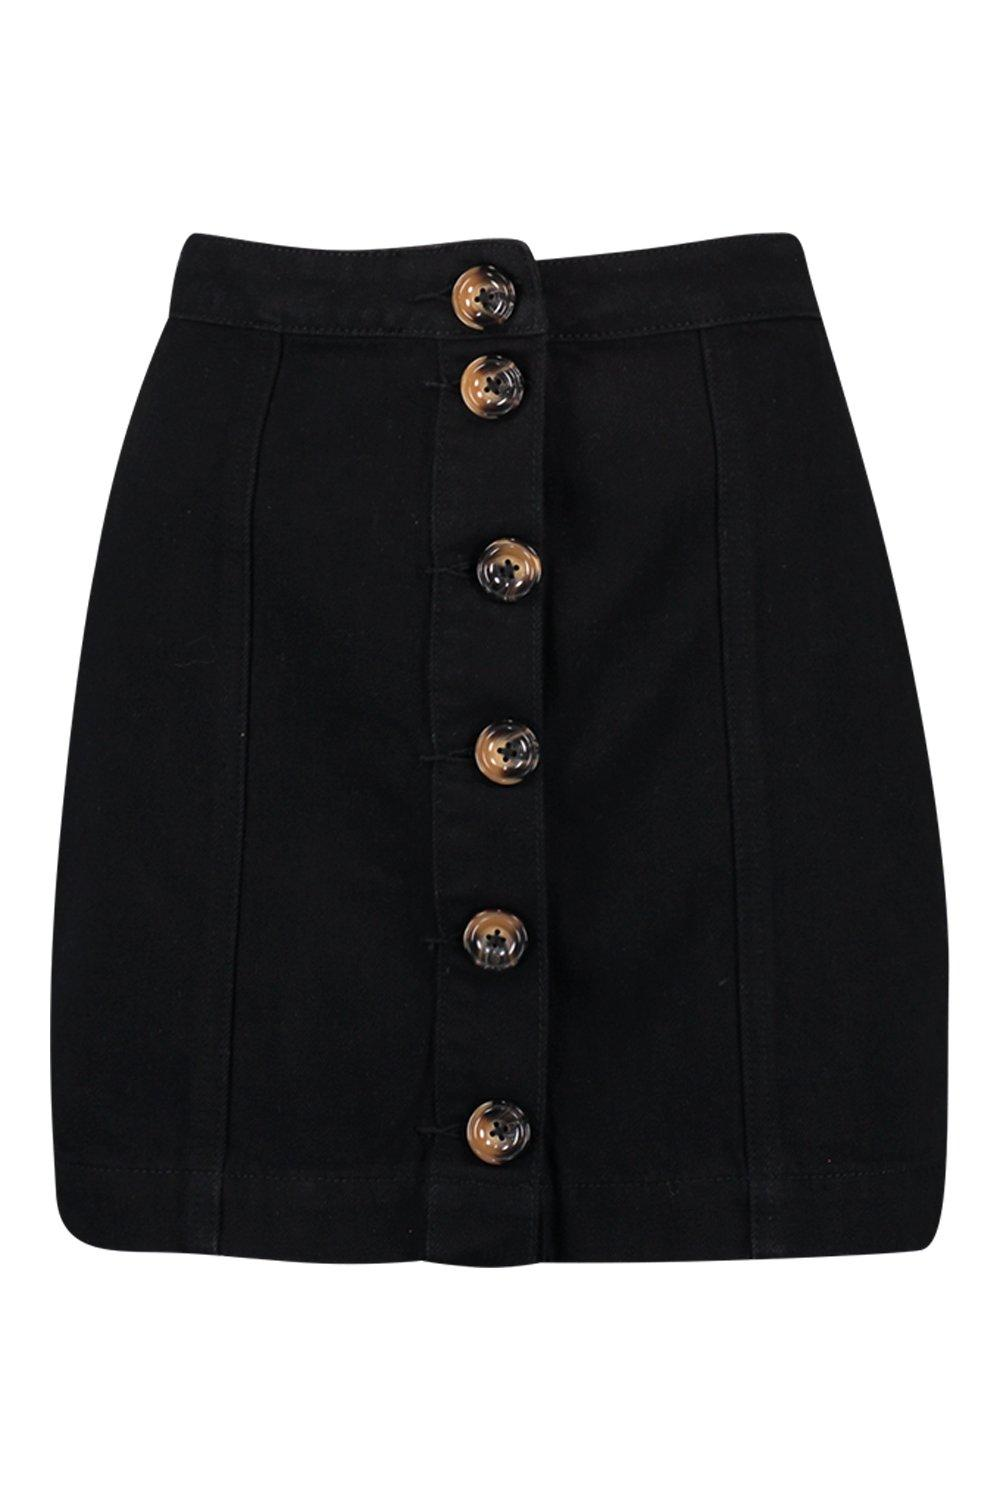 Mock Button Horn Denim black Skirt 66aqrz